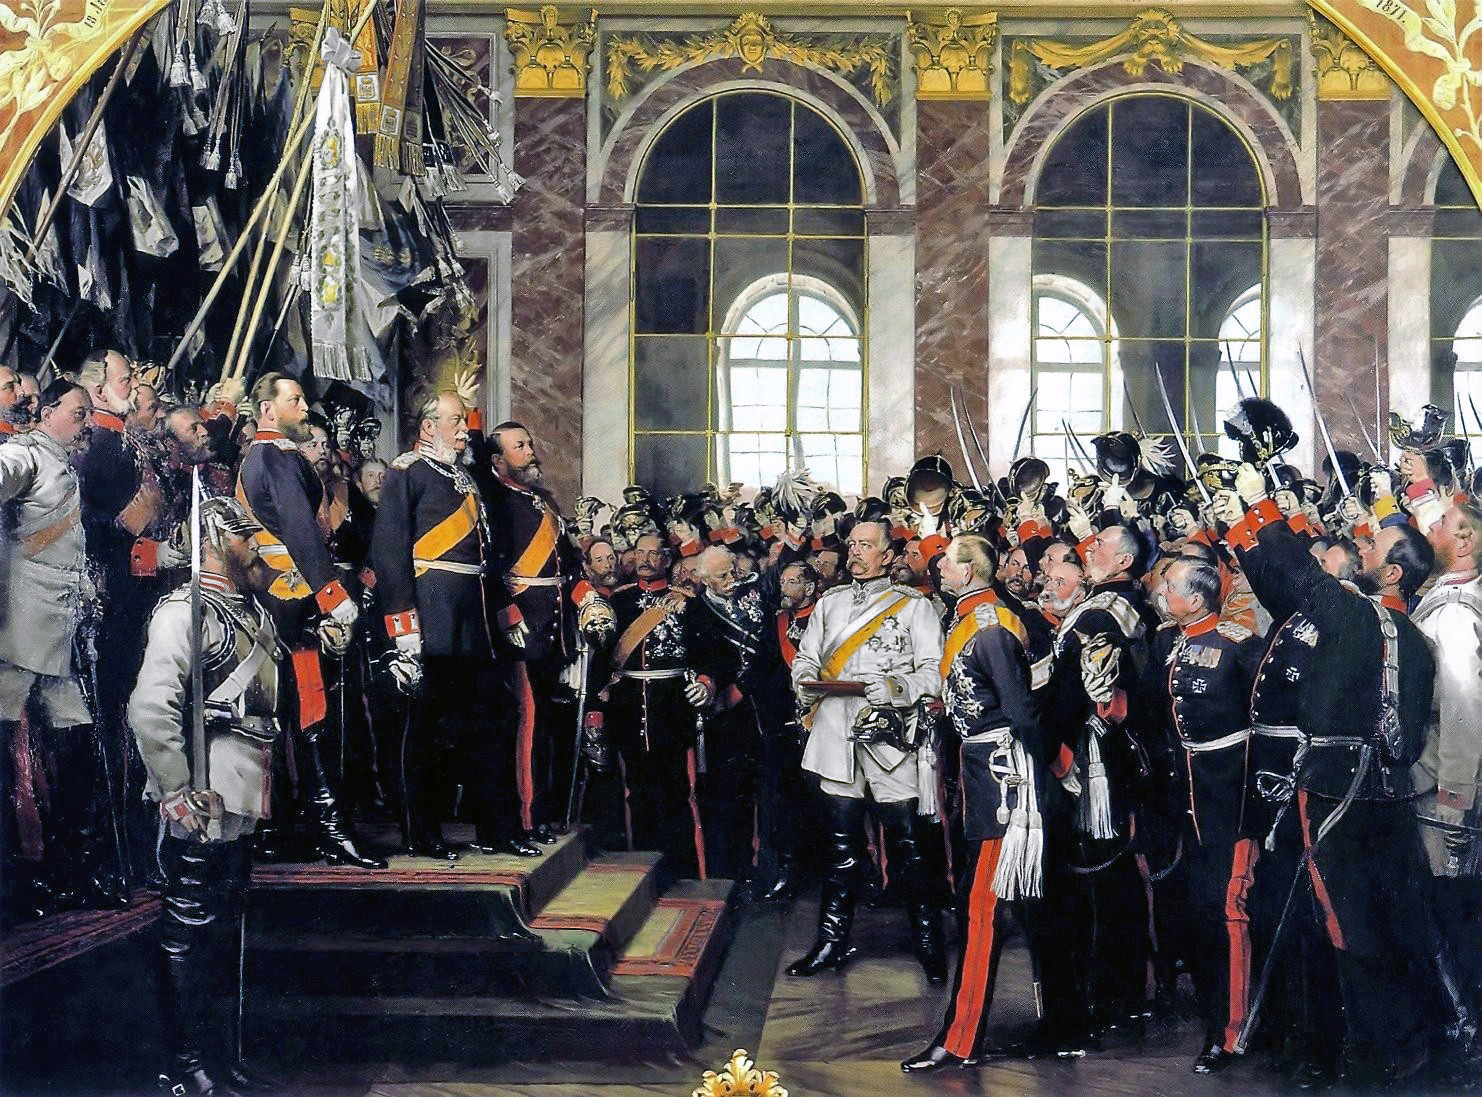 The acclimation of the Kaiser in the Hall of Mirrors  Von Anton von Werner - Museen Nord / Bismarck Museum: Picture, Gemeinfrei, https://commons.wikimedia.org/w/index.php?curid=2481294